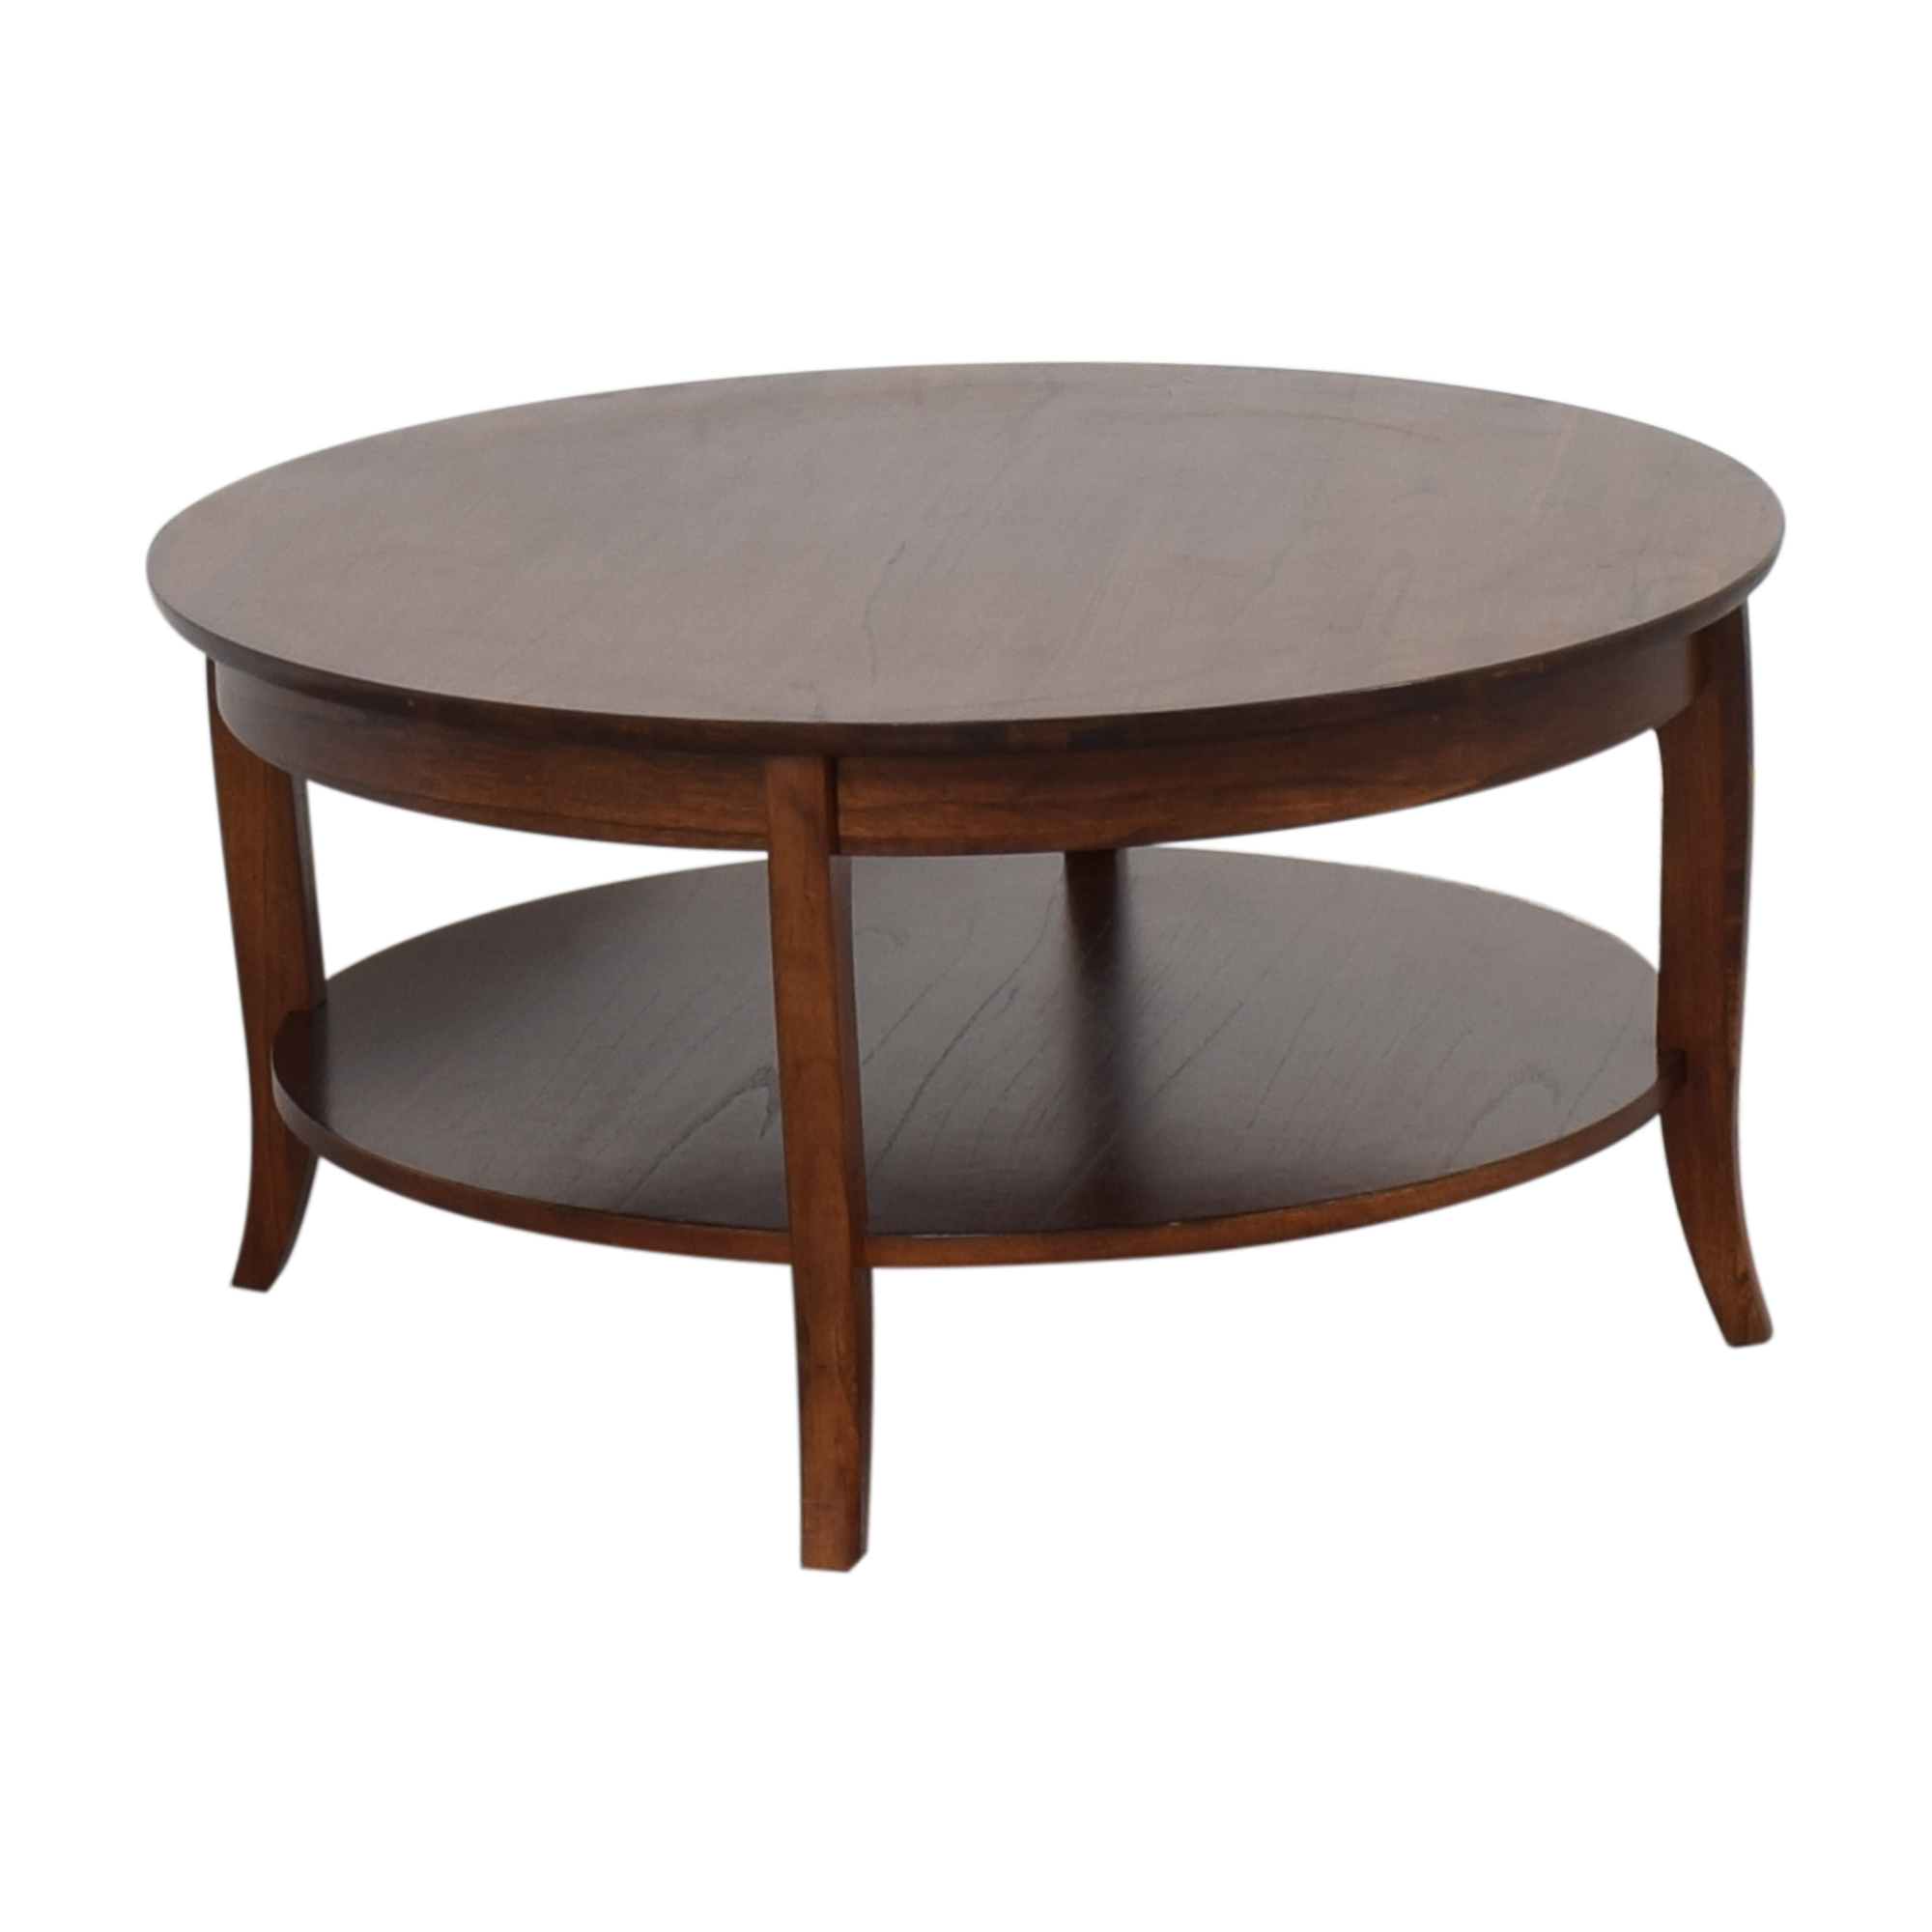 shop Macy's Round Coffee Table  Macy's Tables